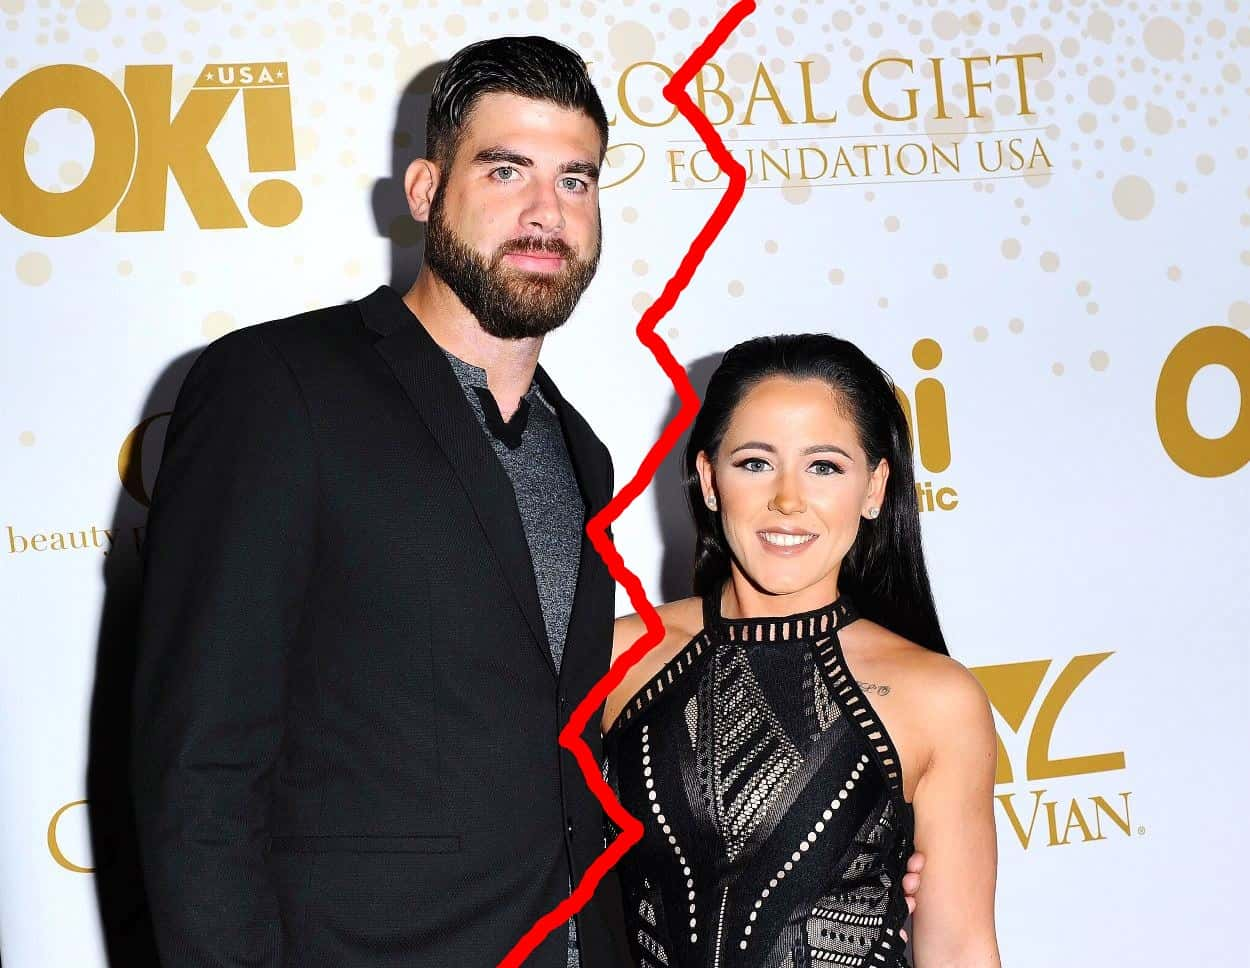 Jenelle Evans Announces Divorce From Husband David Eason Months After MTV Firing, Is She Teasing a Teen Mom 2 Return?